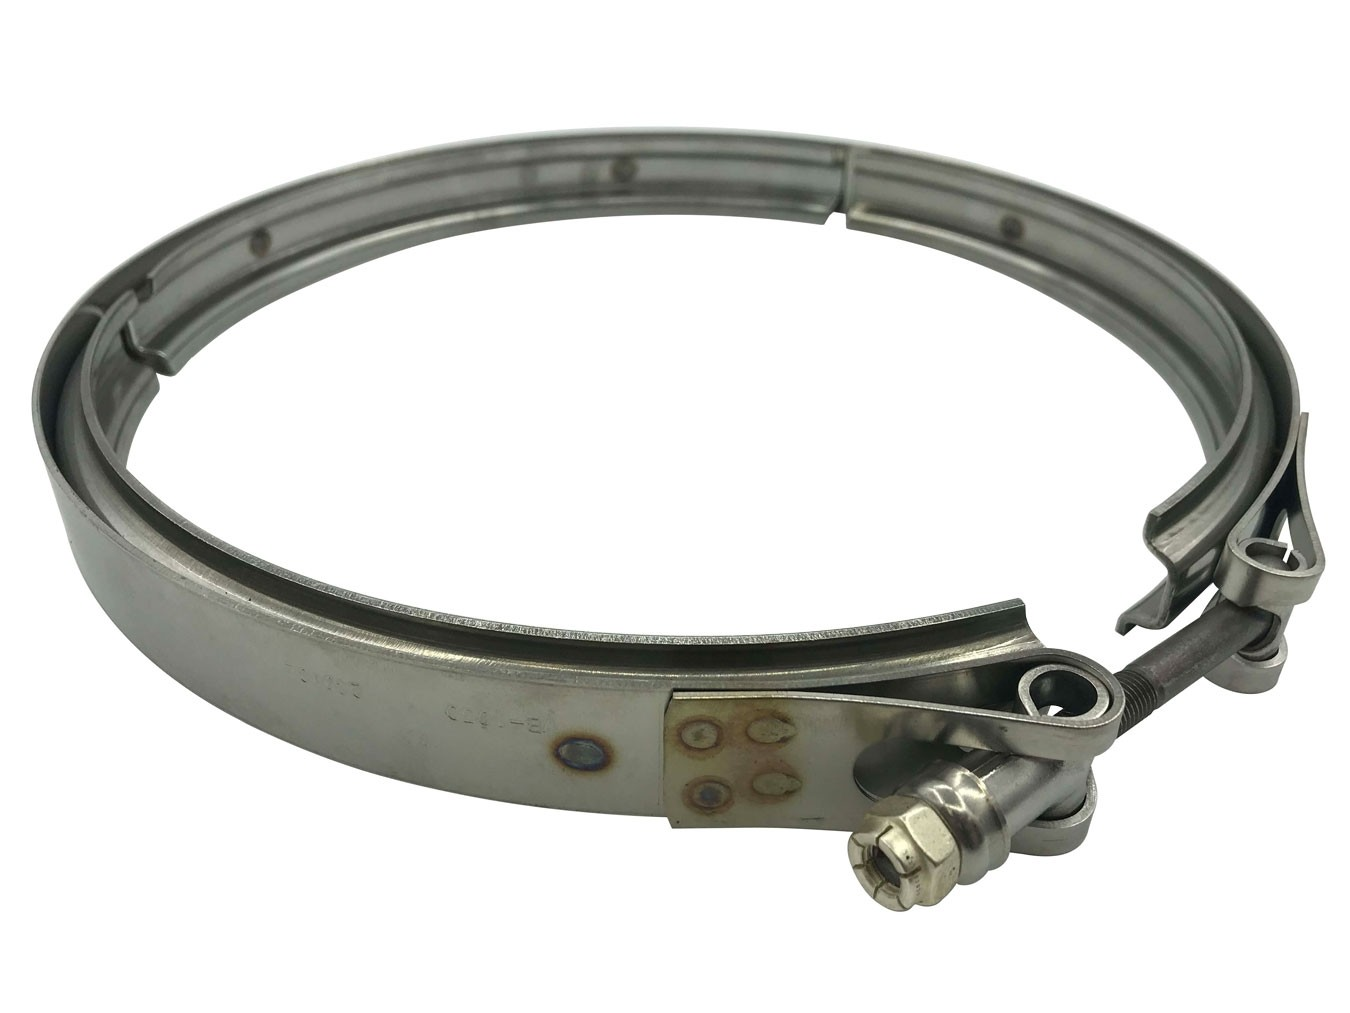 Detroit Diesel VBand Clamp A6809950202 Full View.